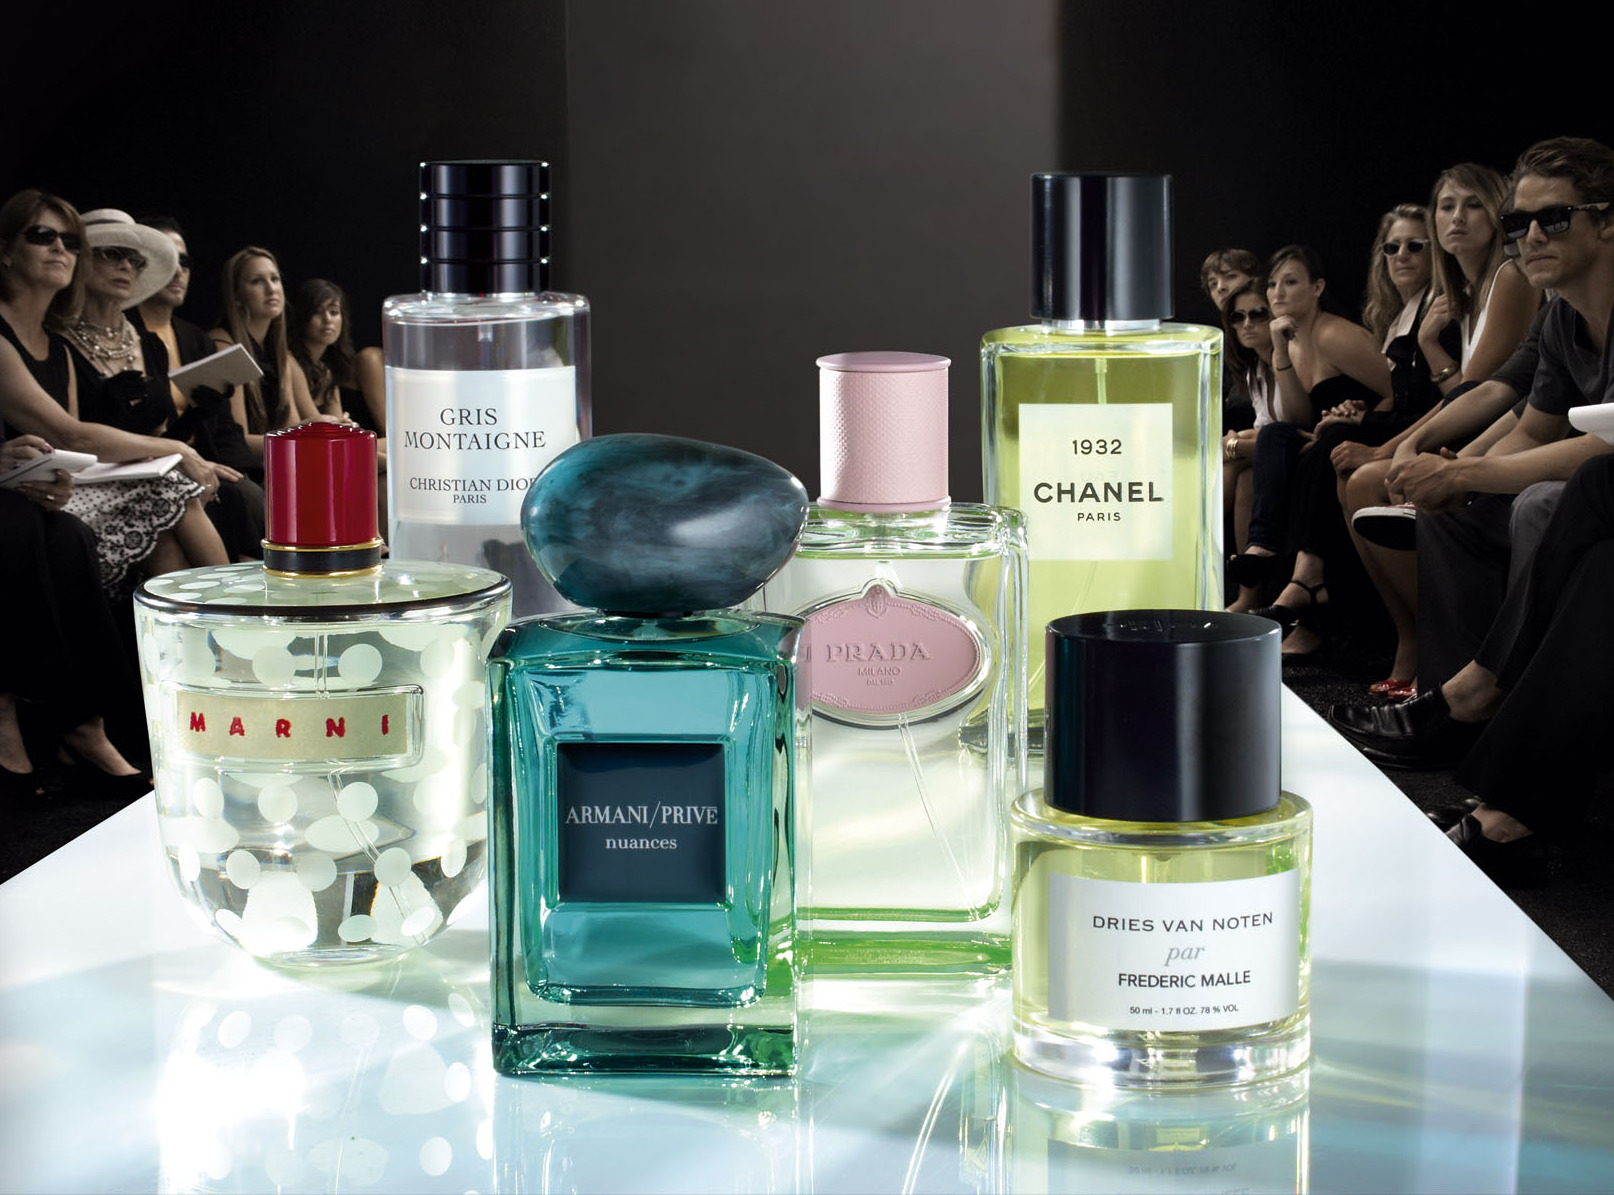 Gris Montaigne Christian Dior dress scents | how to spend it